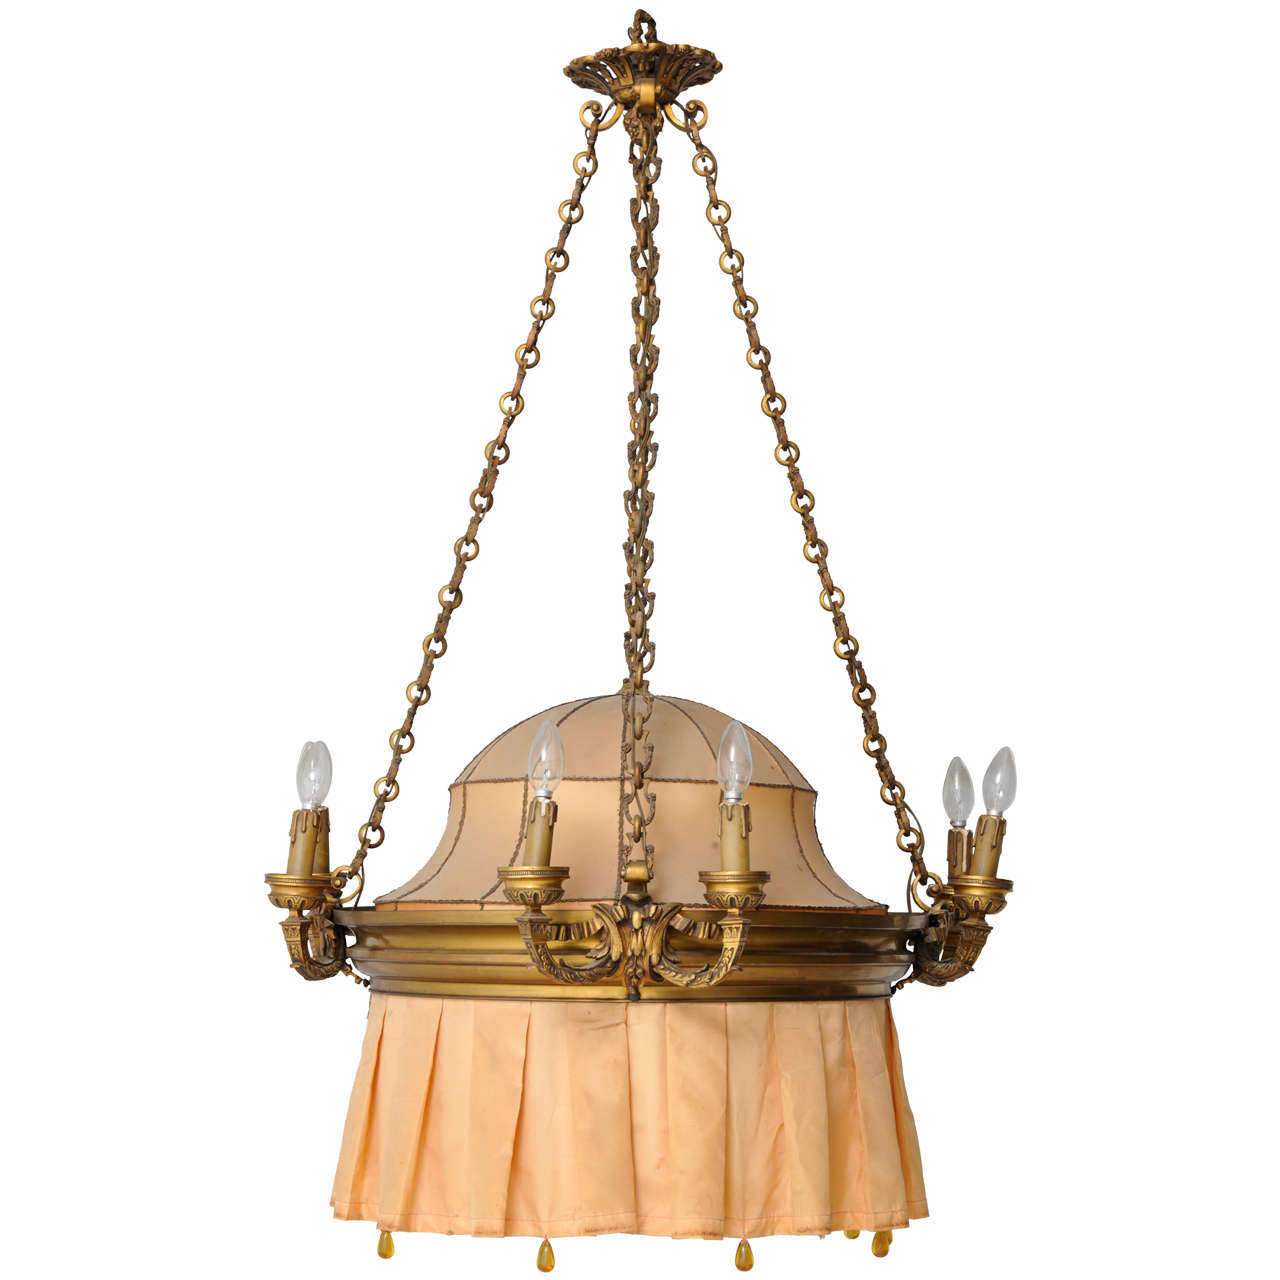 French art nouveau chandelier for sale at 1stdibs for Chandelier art nouveau